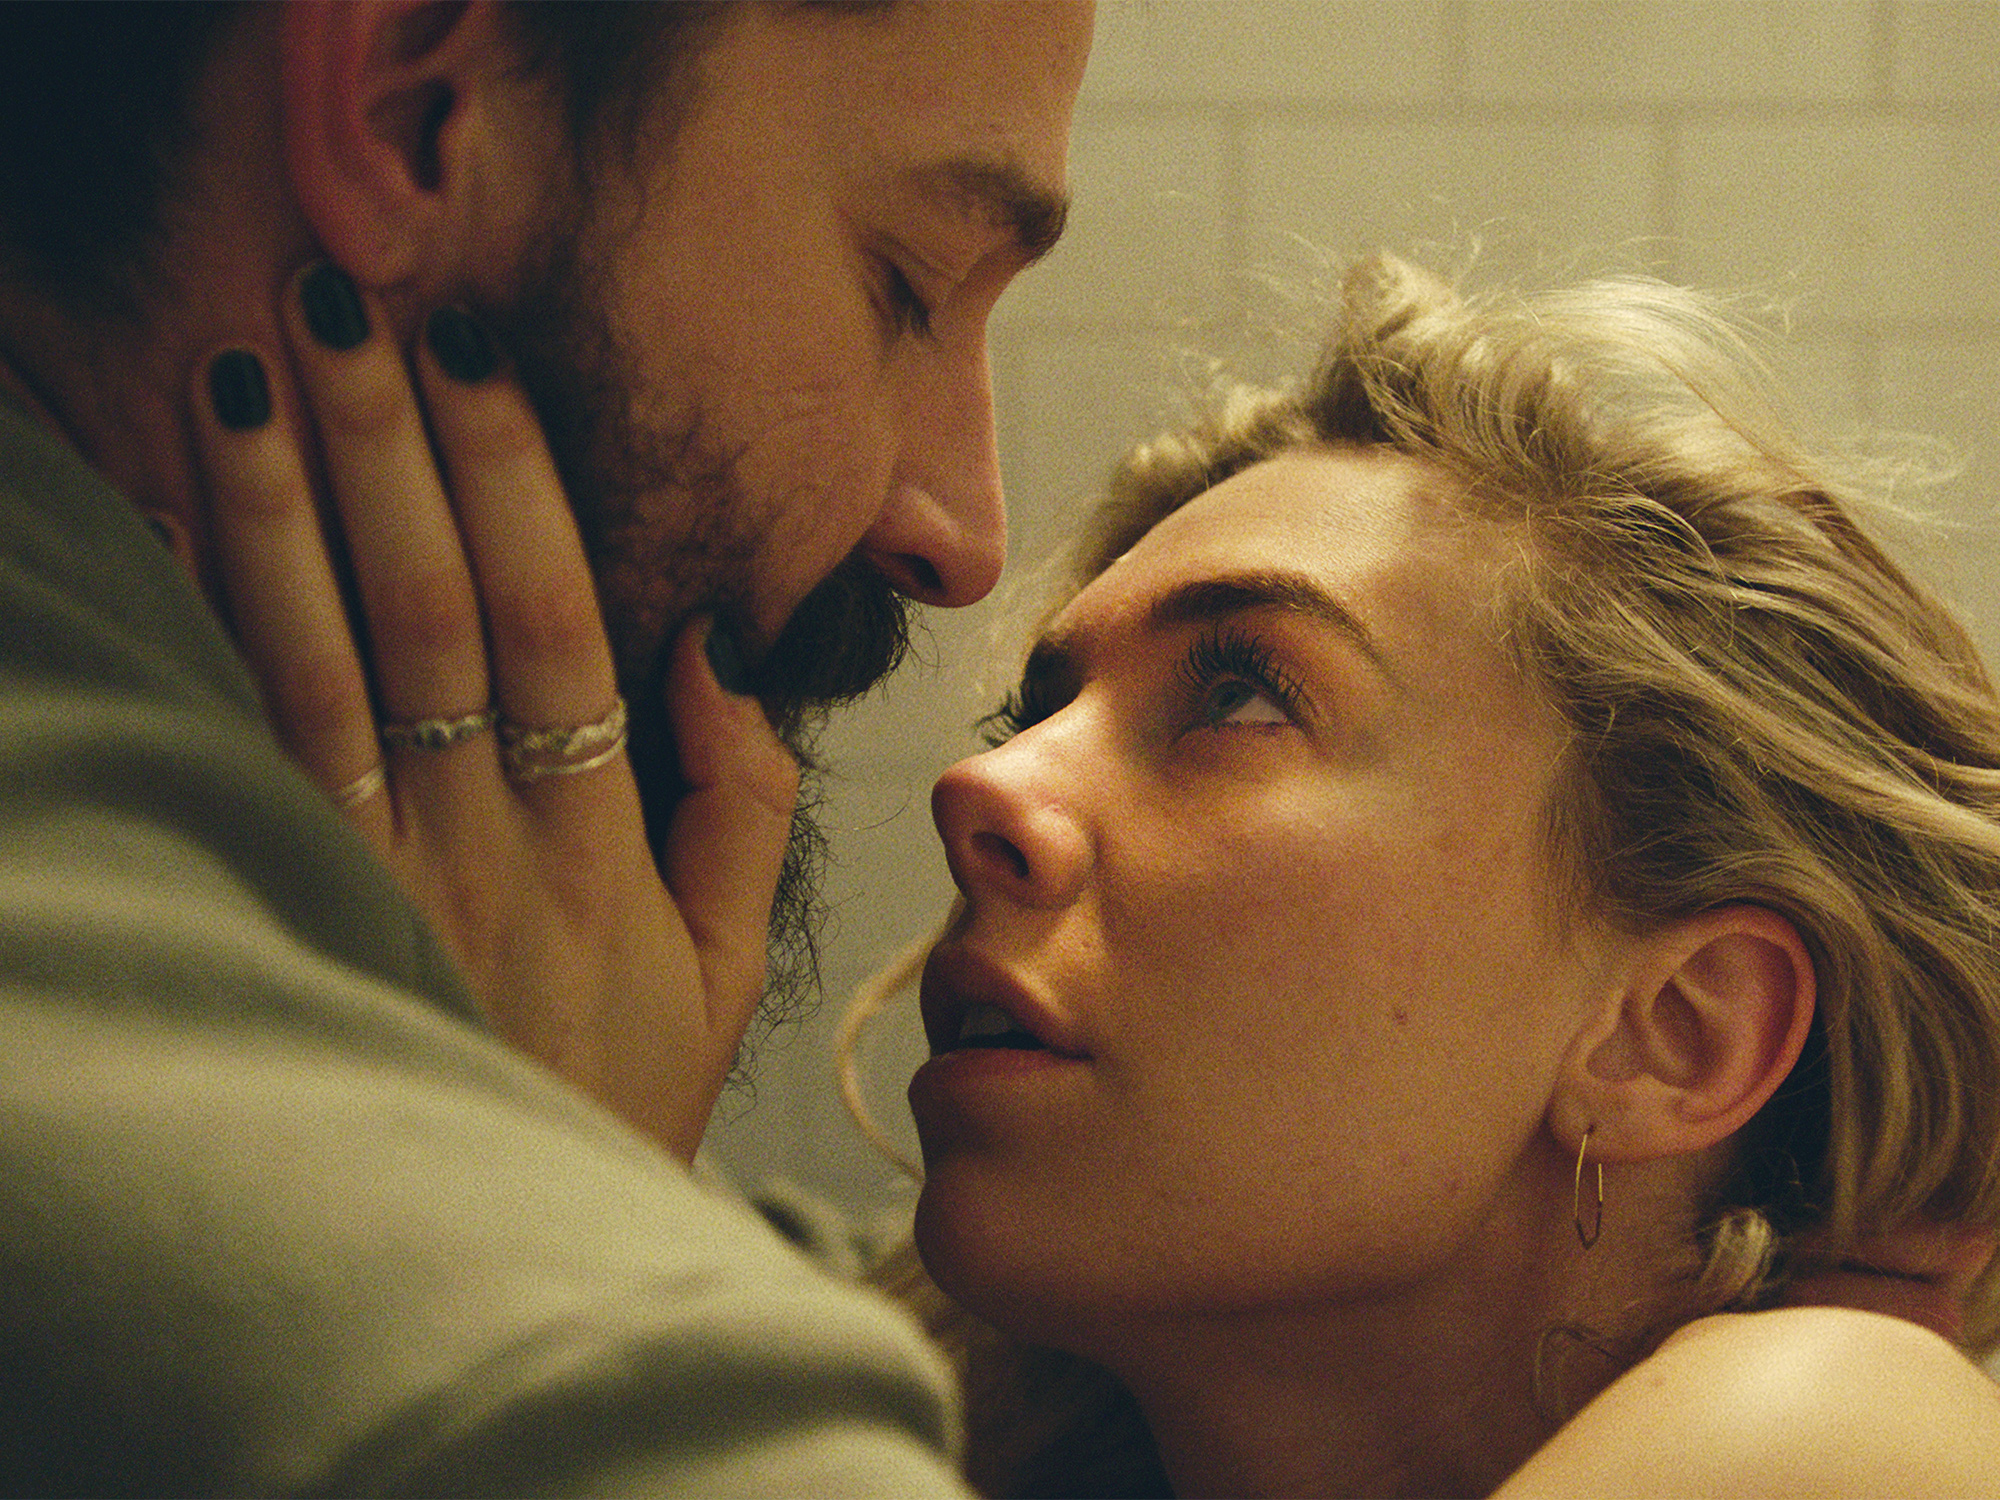 A still of Shia Labeouf and Vanessa Kirby in Pieces of a Woman